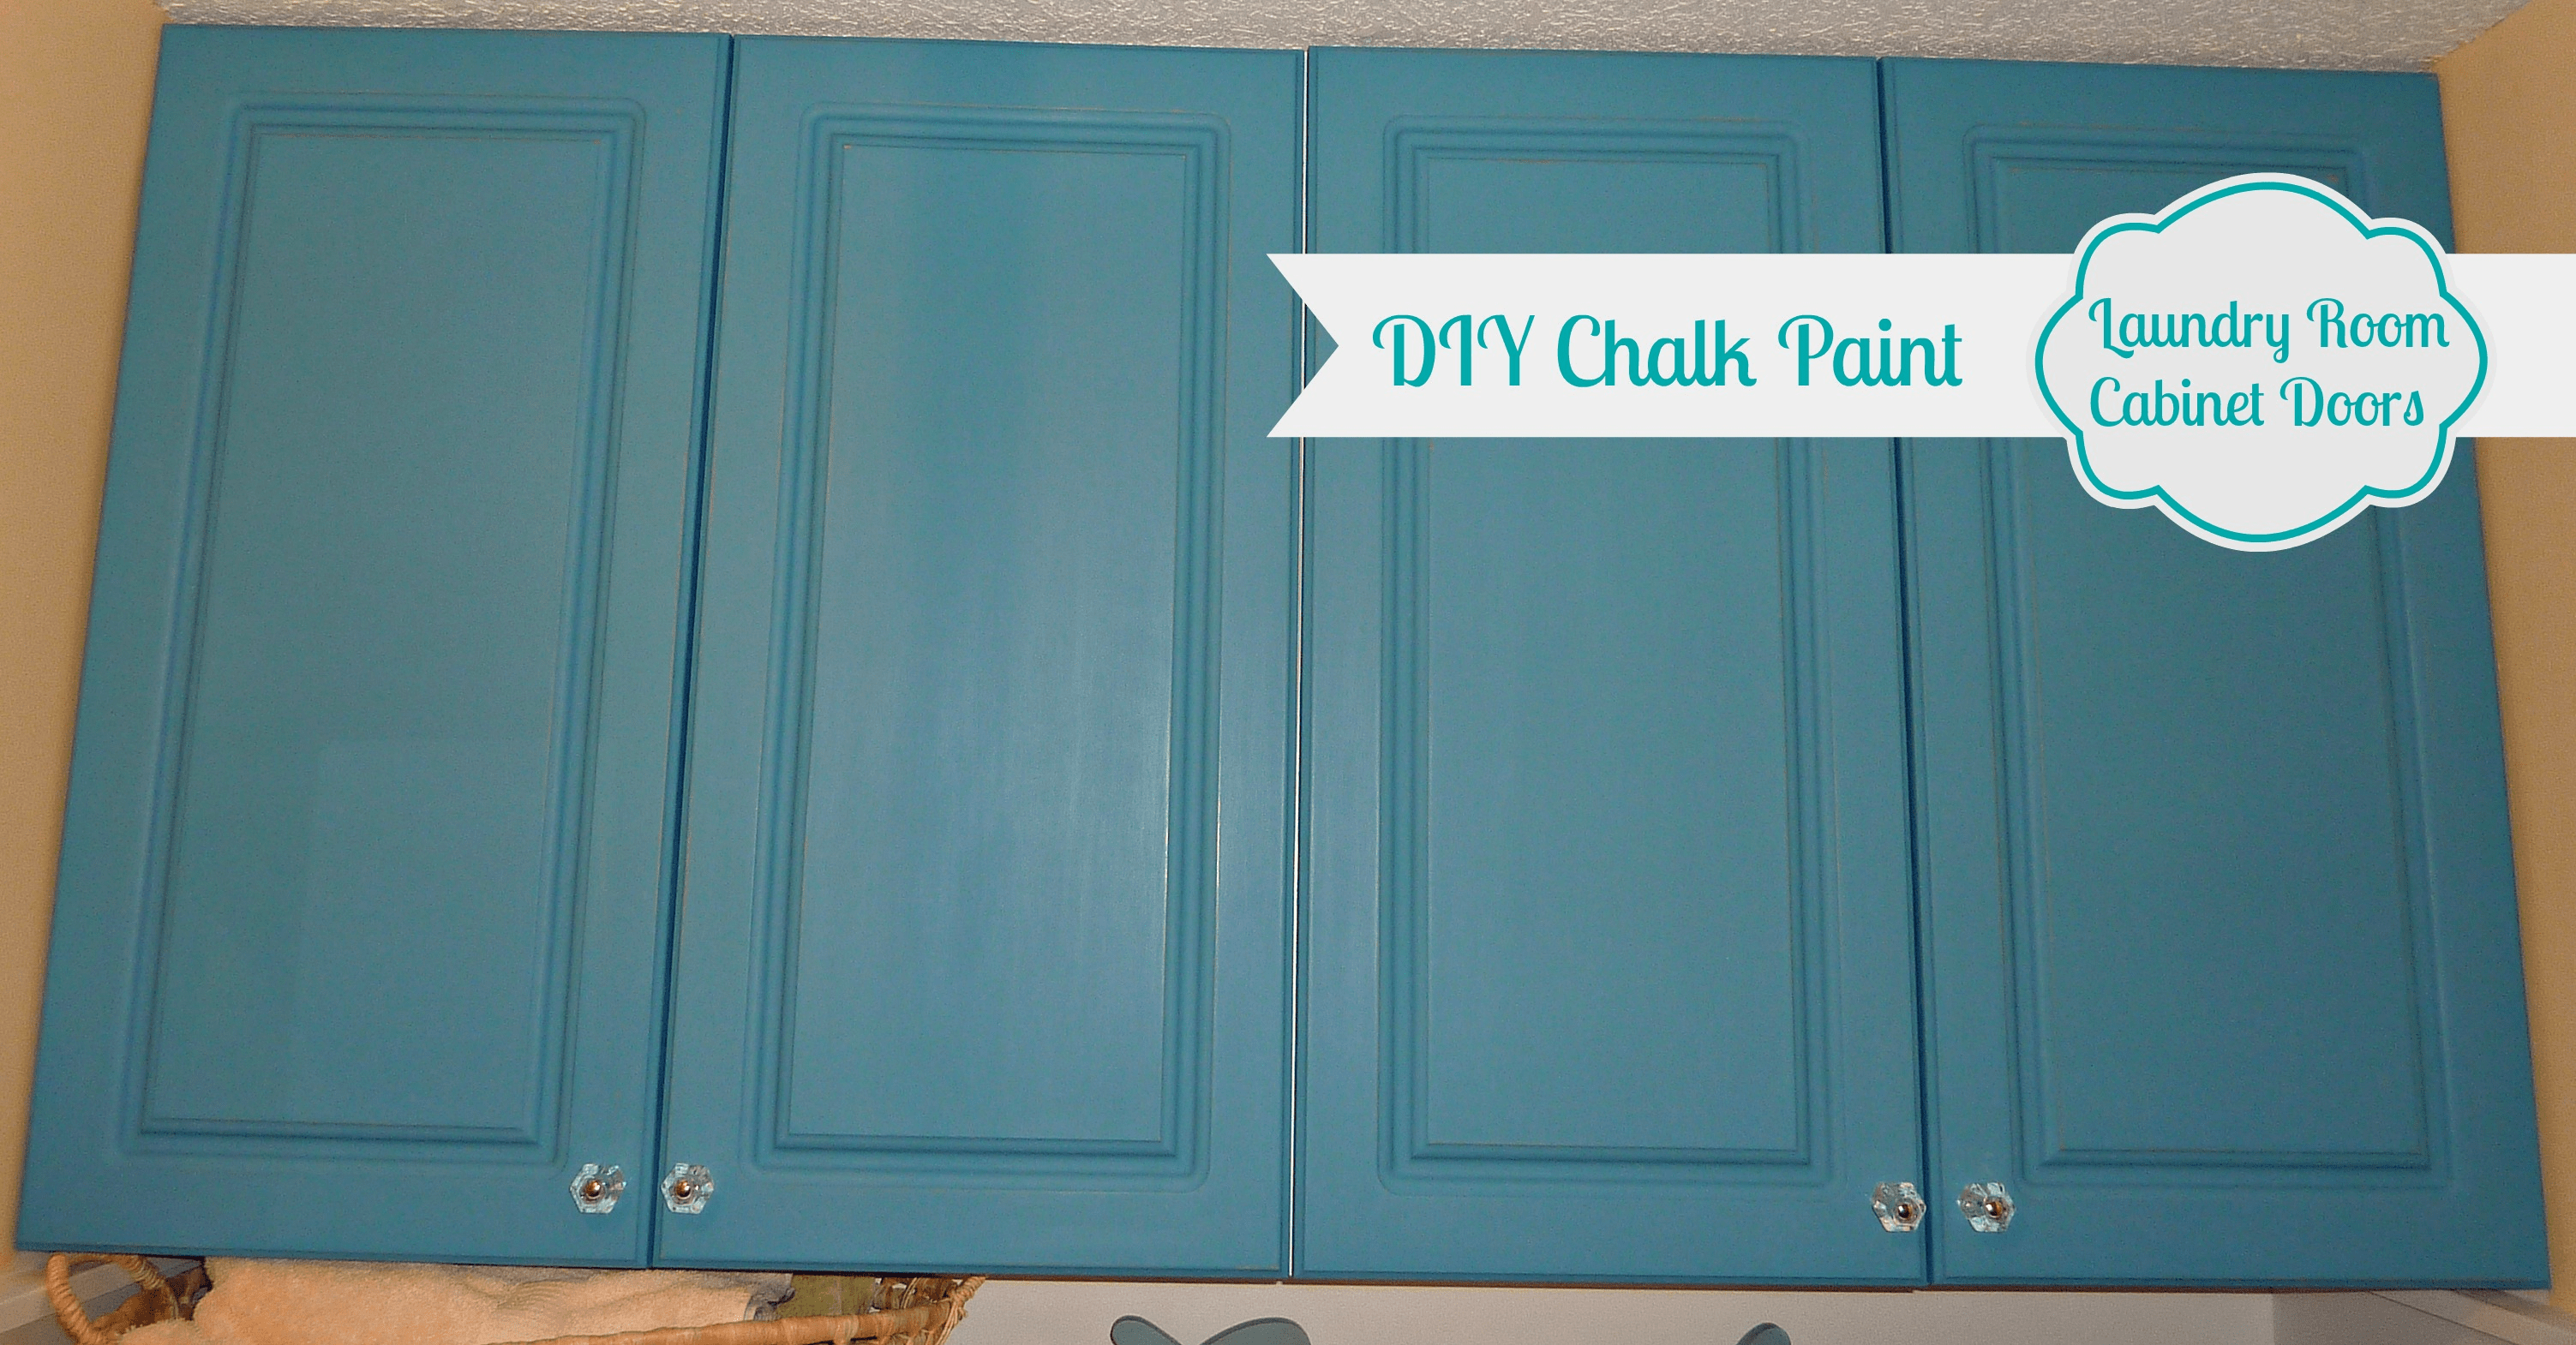 diy chalk painted doors the love affair continues turquoise kitchen cabinets DIY Chalk Paint Laundry Room Cabinet Doors 2